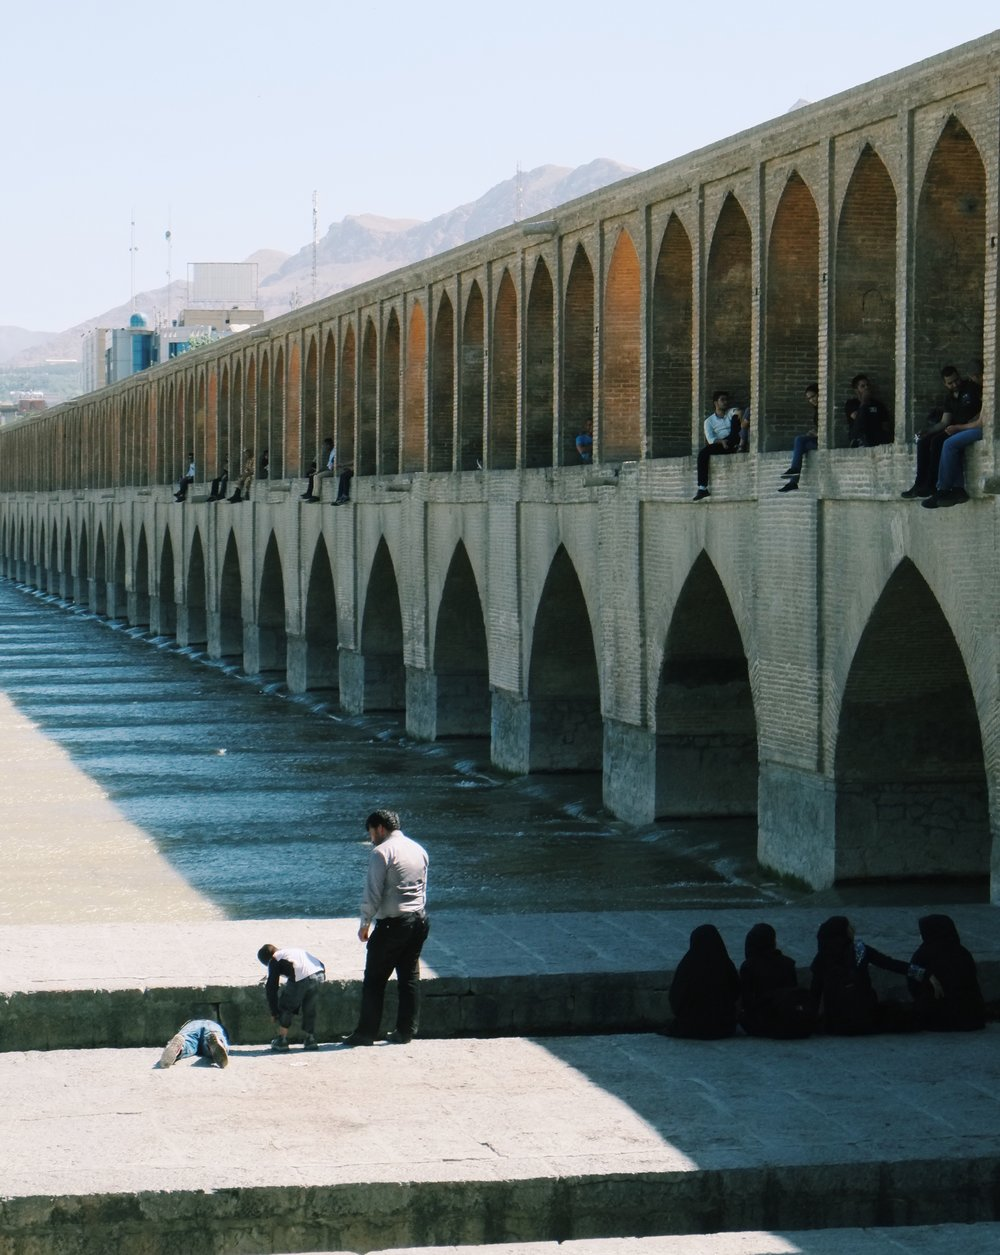 Si-o-se-pol Bridge in Esfahan in Iran by Joost Bastmeijer.jpeg